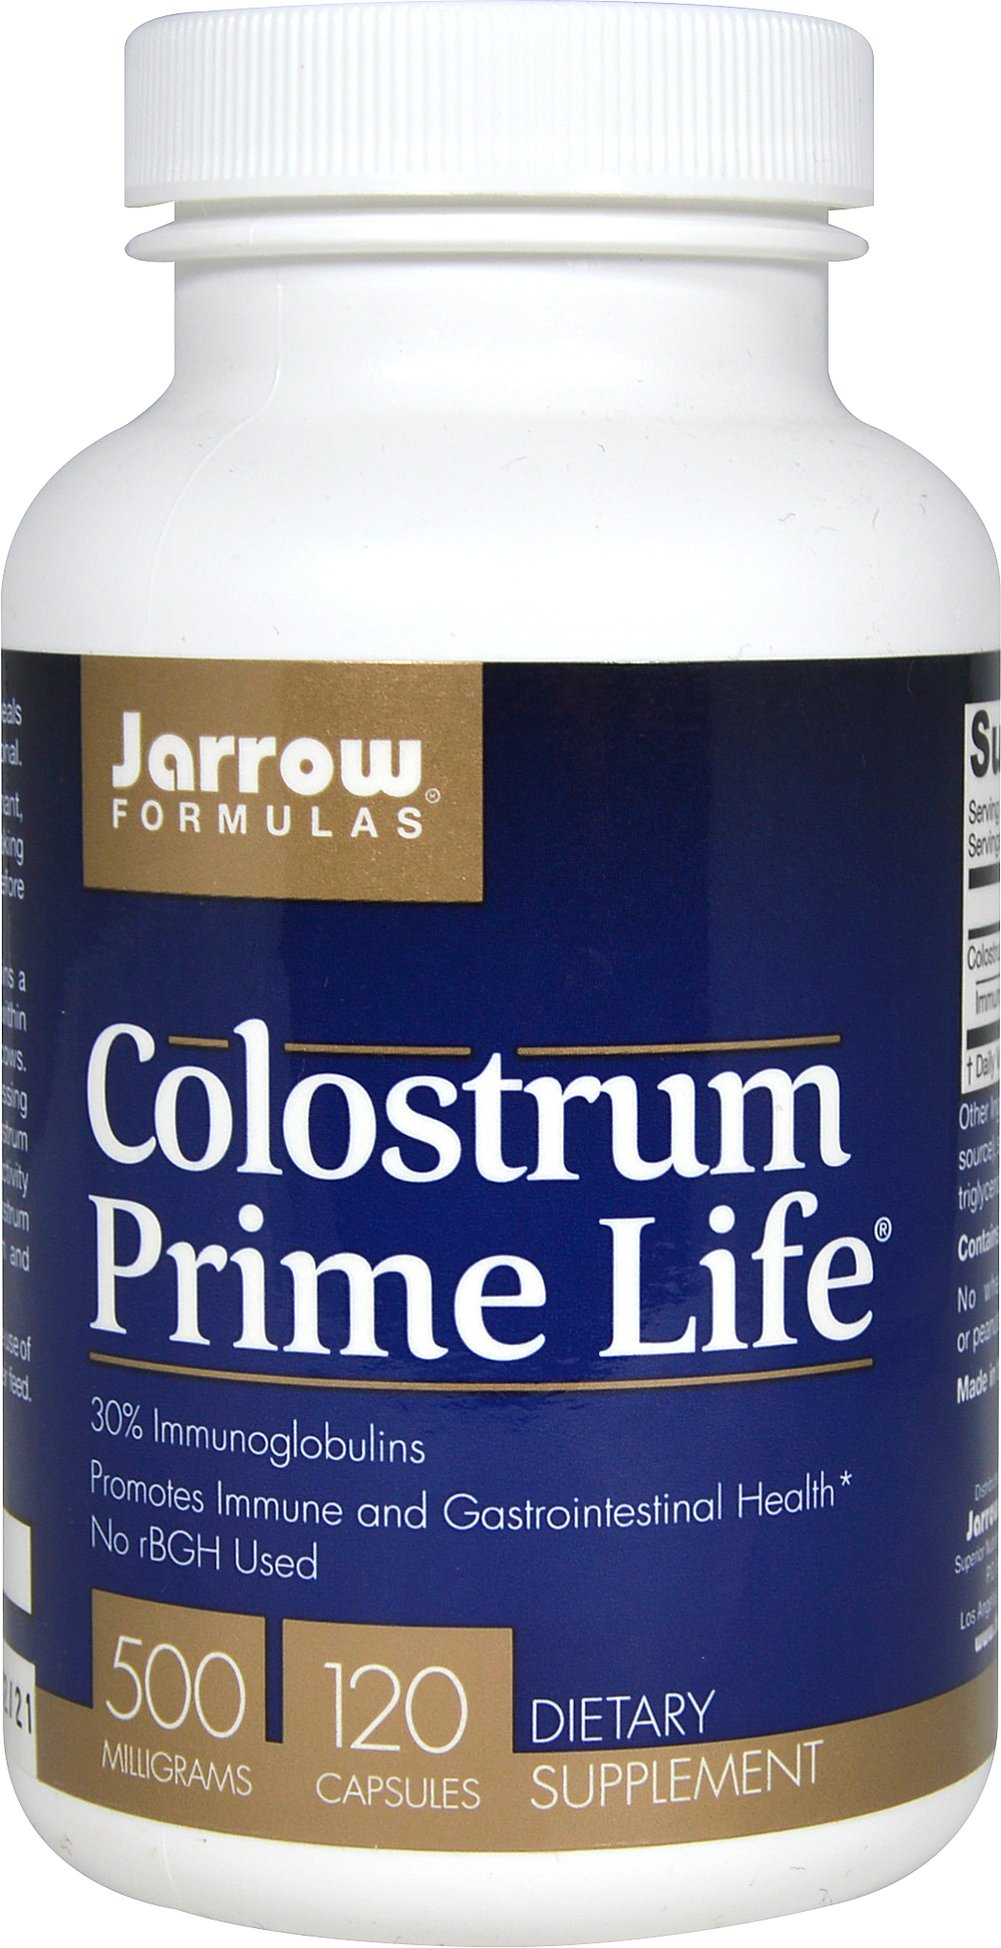 Colostrum Prime Life® 500 mg  120 Capsules 500 mg $26.95